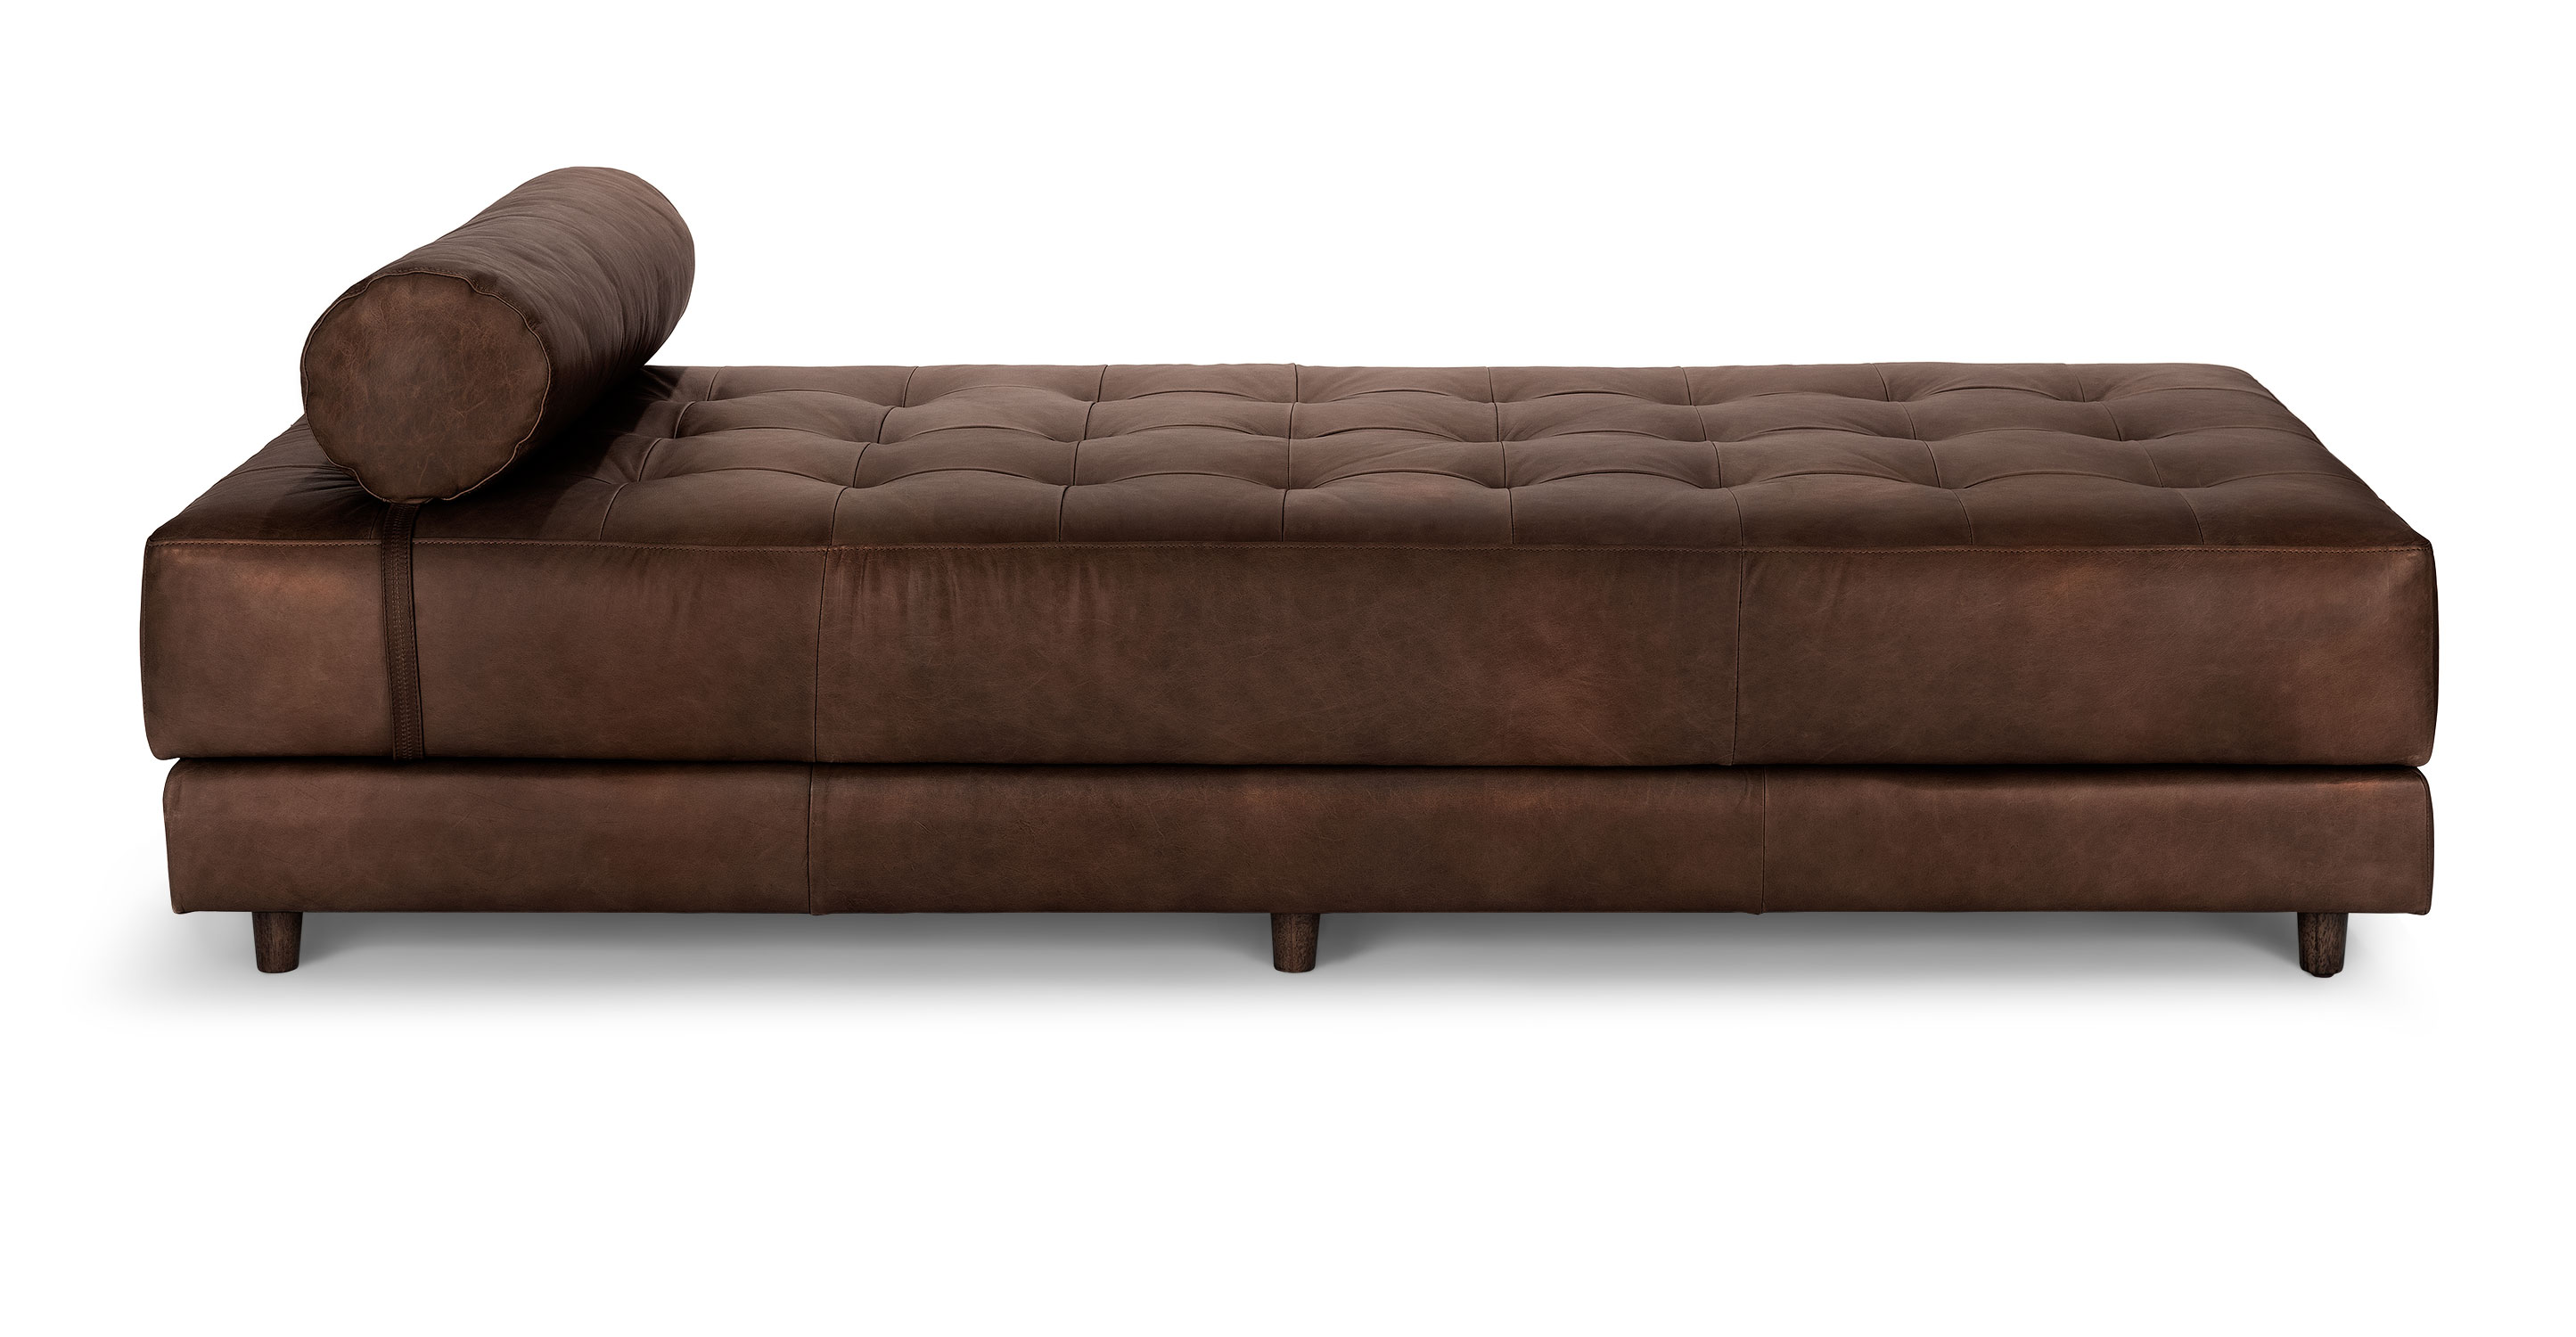 Baskets article modern mid century and scandinavian furniture - Sven Charme Chocolat Daybed Sofas Article Modern